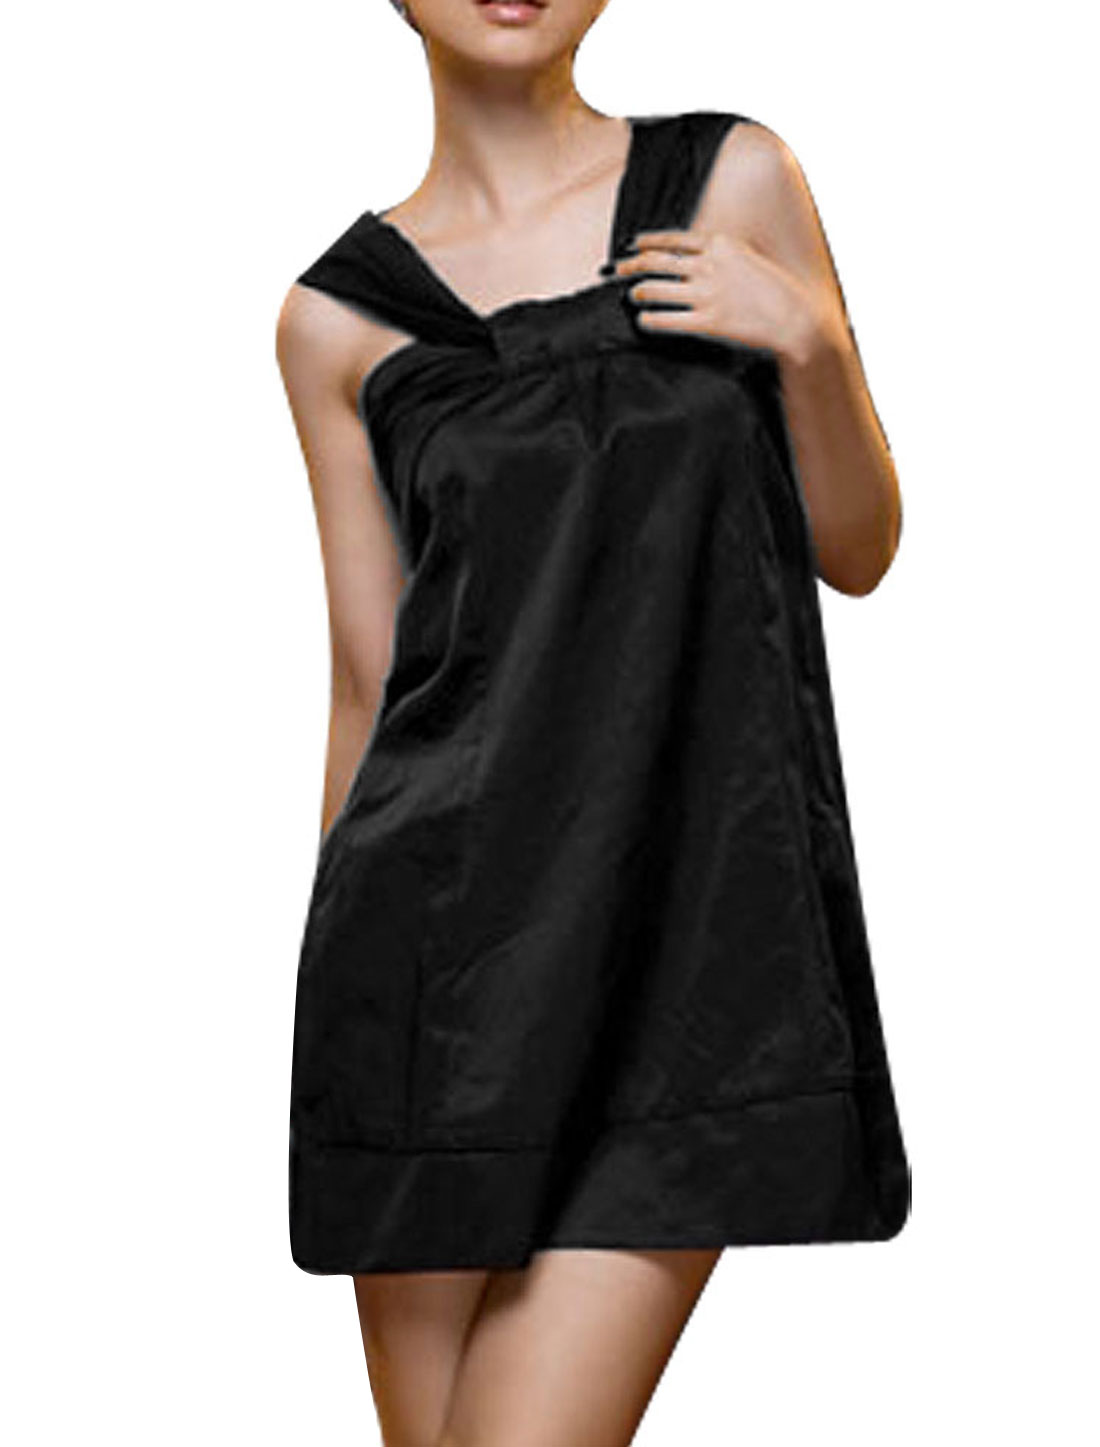 Halter Style Neck Knot Front Black Dress XS for Ladies